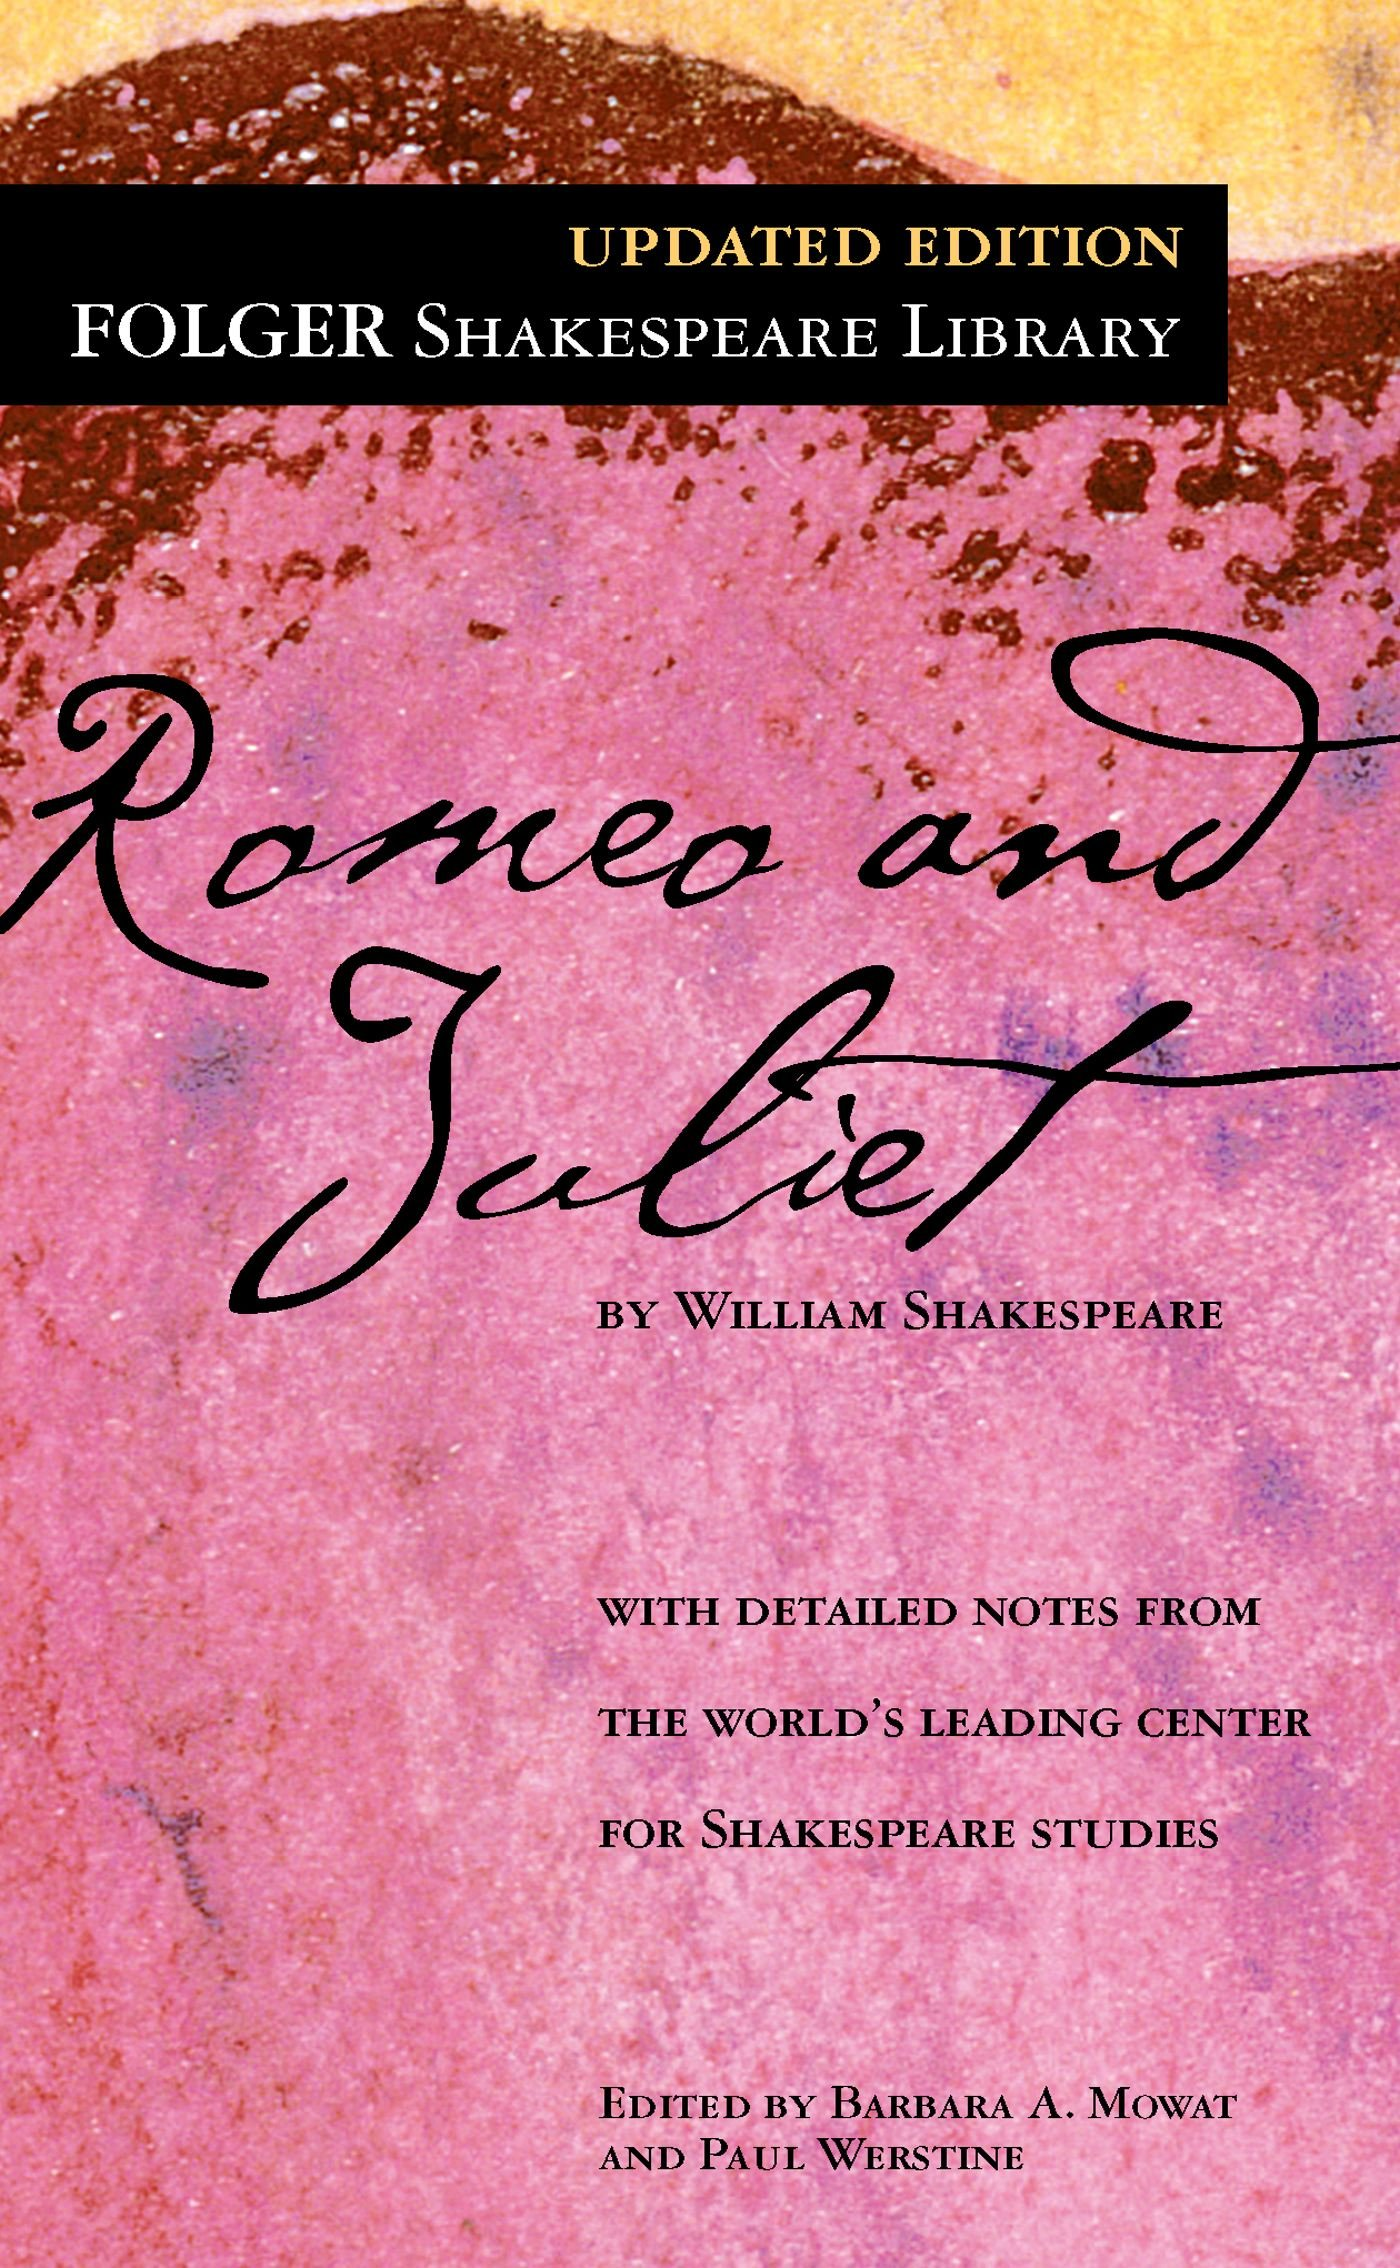 Amazon.com: Romeo and Juliet (Folger Shakespeare Library ...